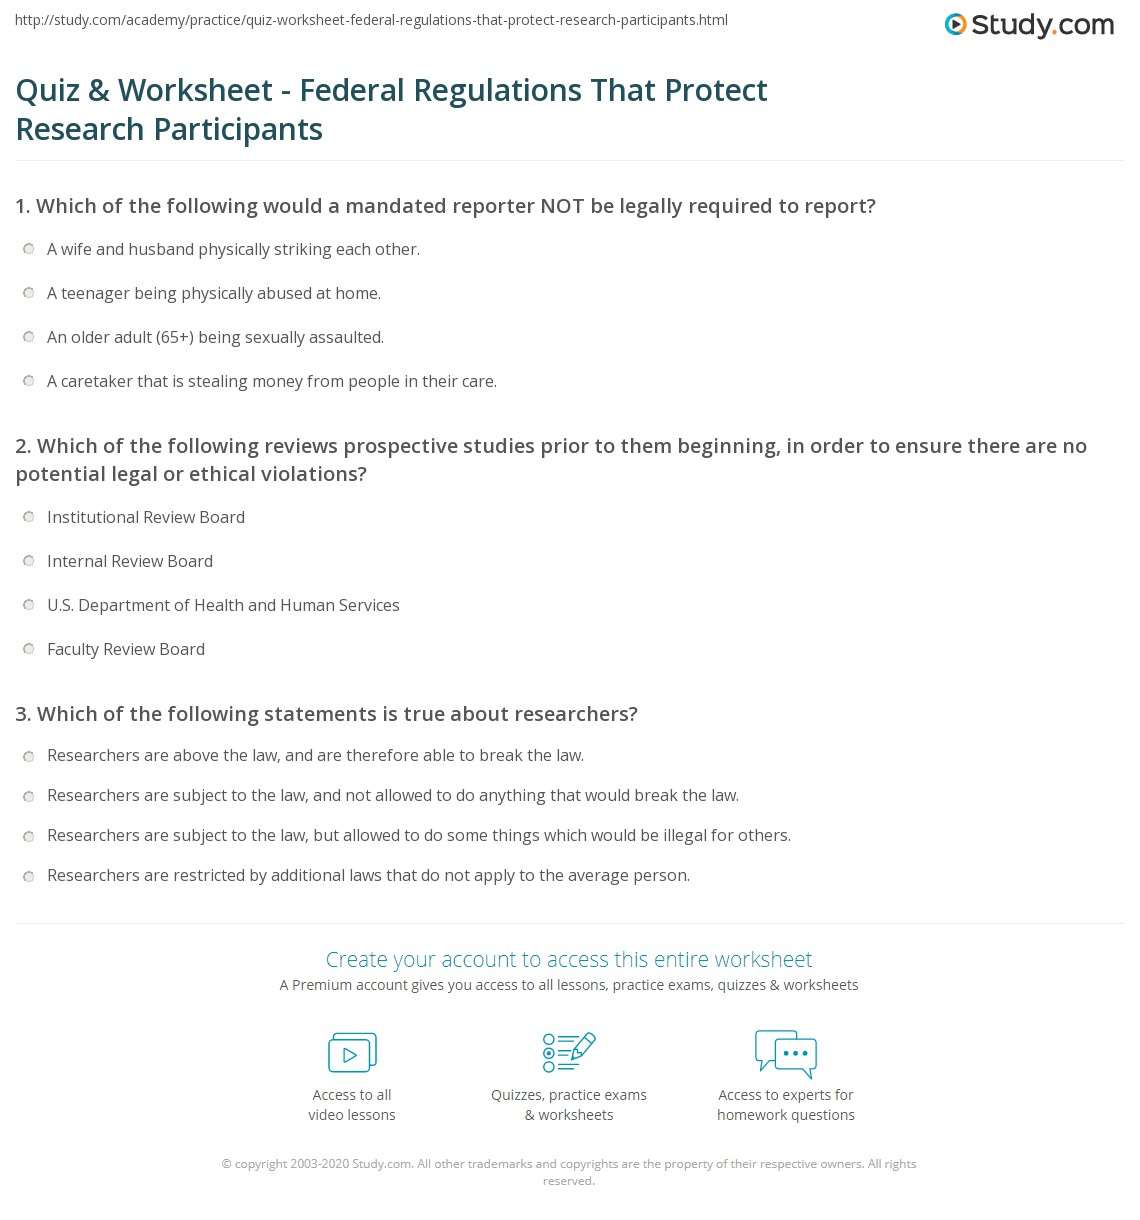 Quiz & Worksheet - Federal Regulations That Protect Research